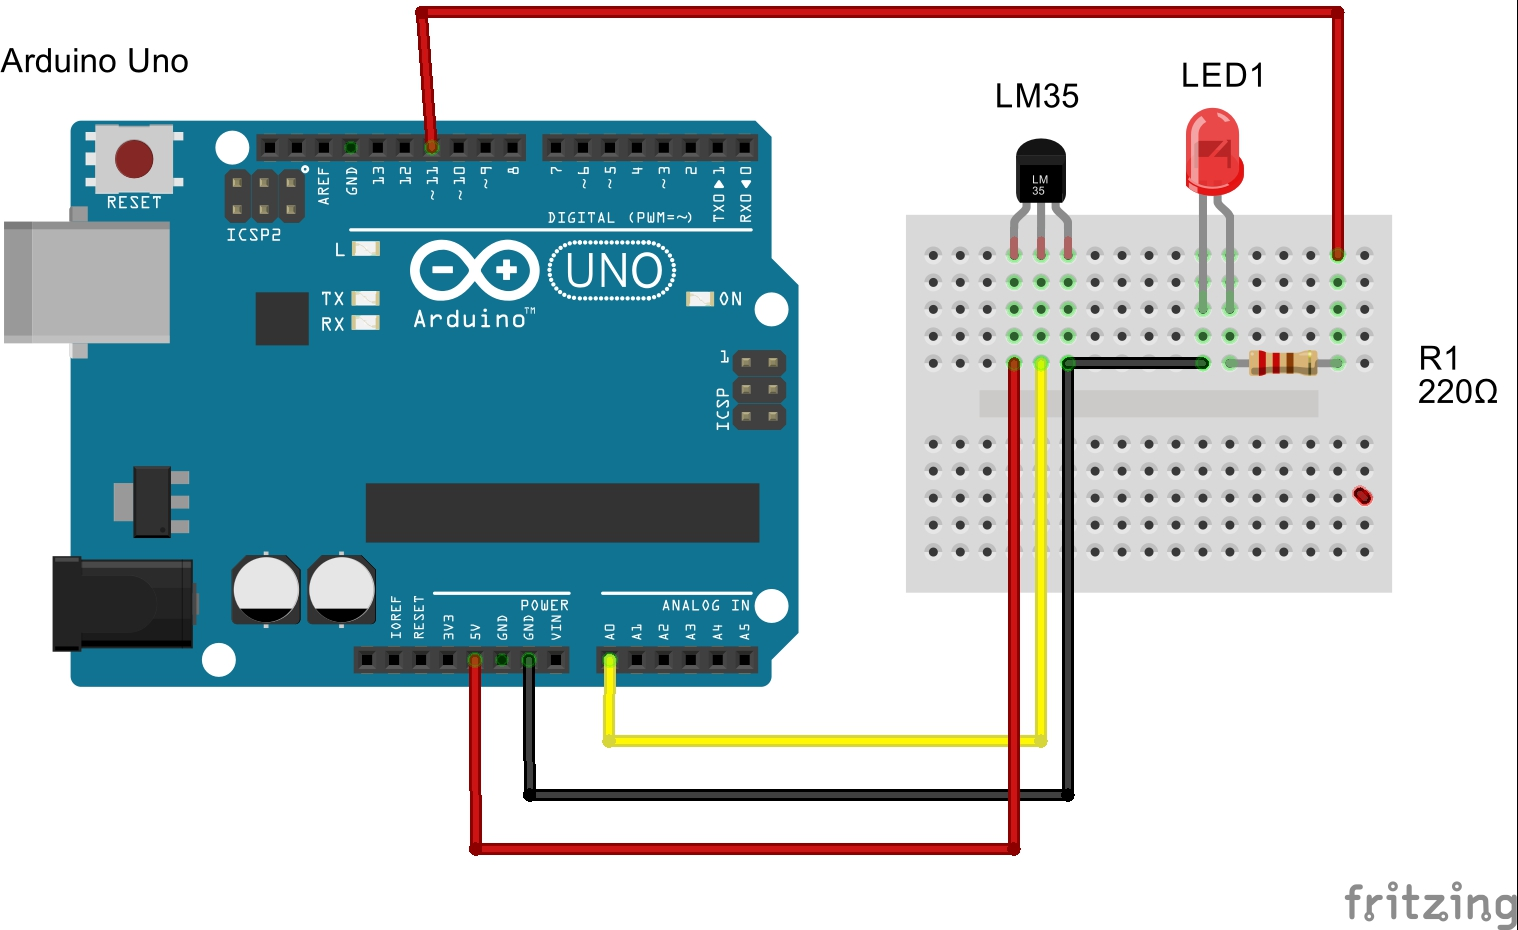 Tweaking4Allcom - Arduino Programming for Beginners